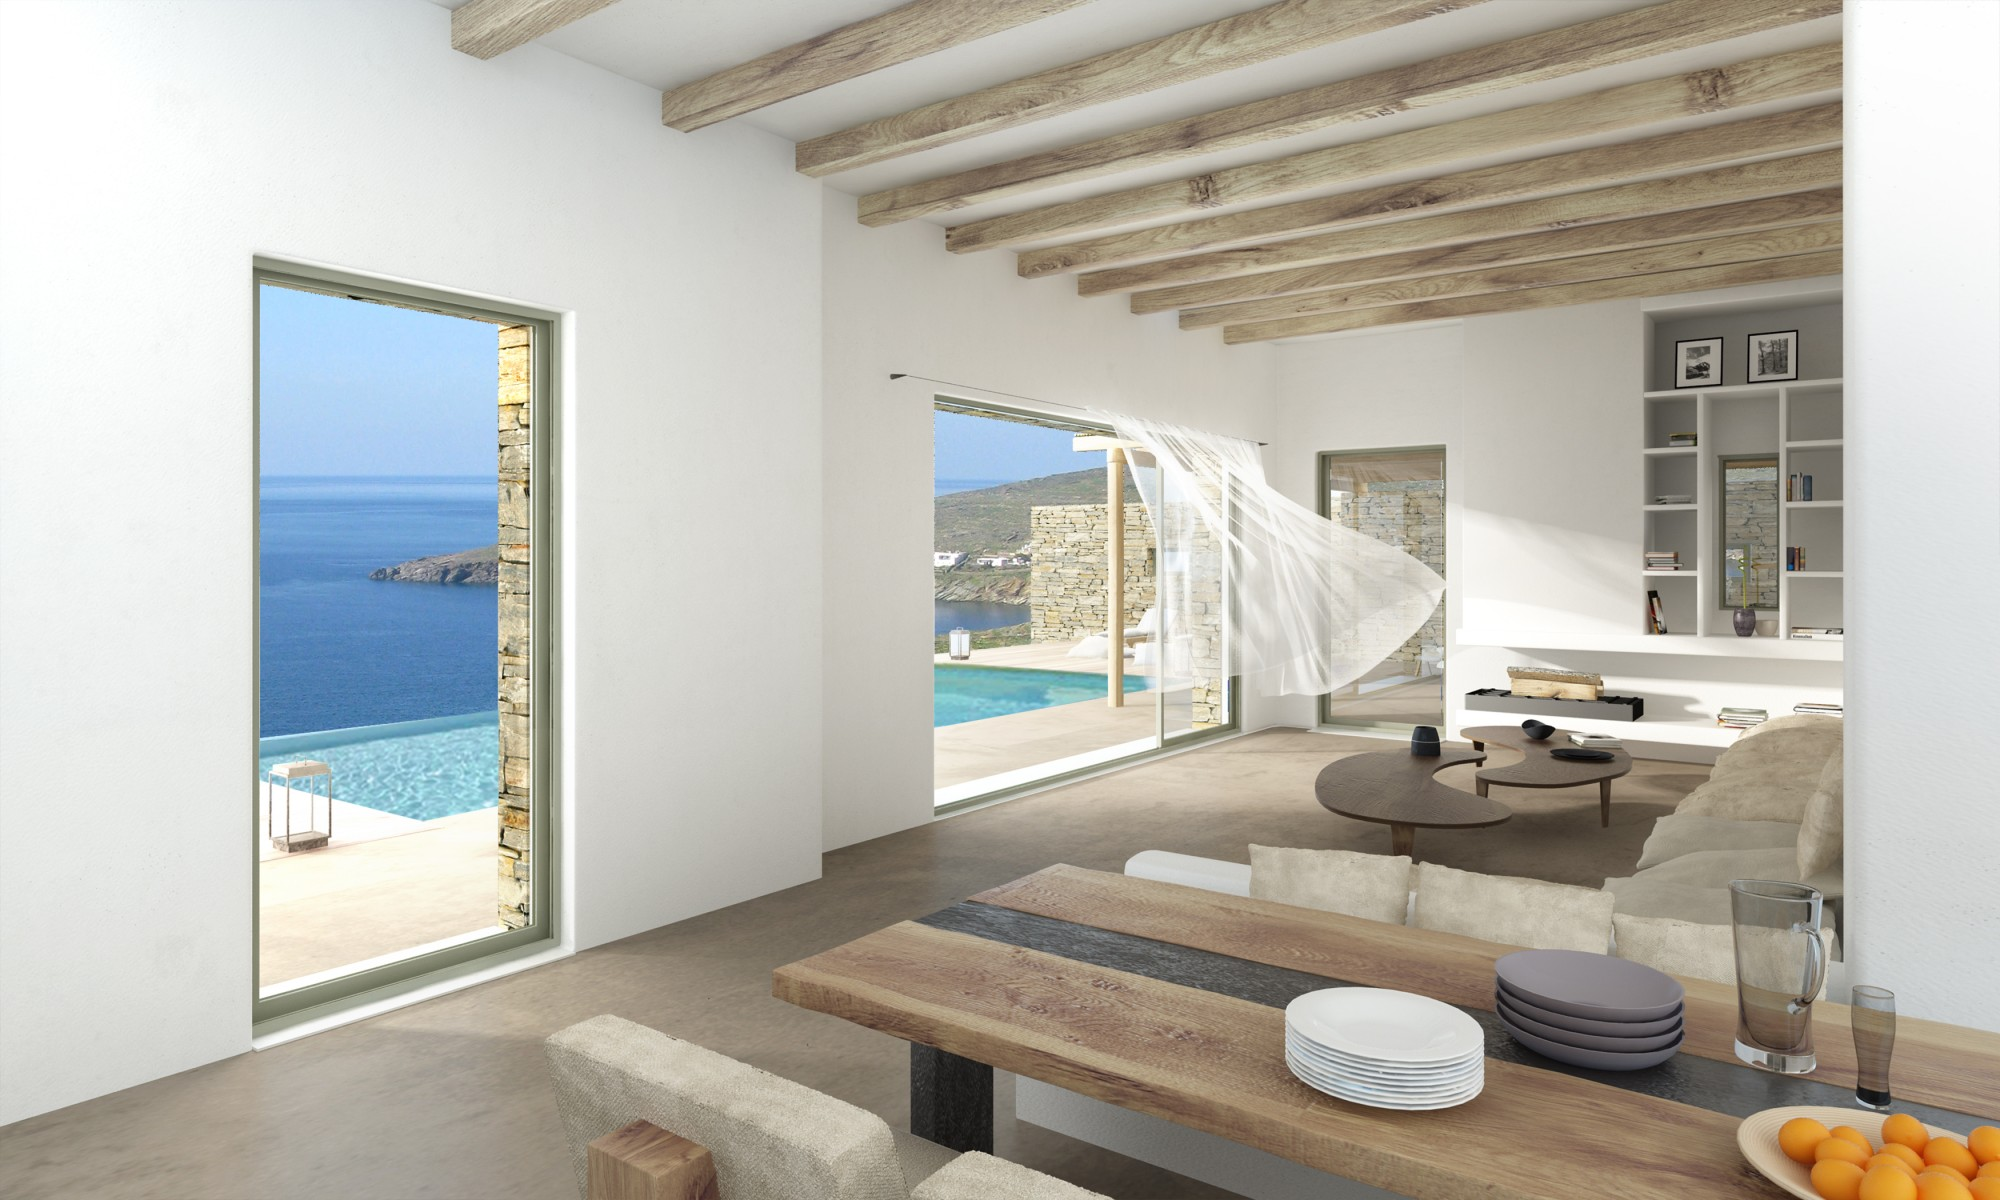 For sale superb modern villa on the greek island of tinos for Villa contemporaine